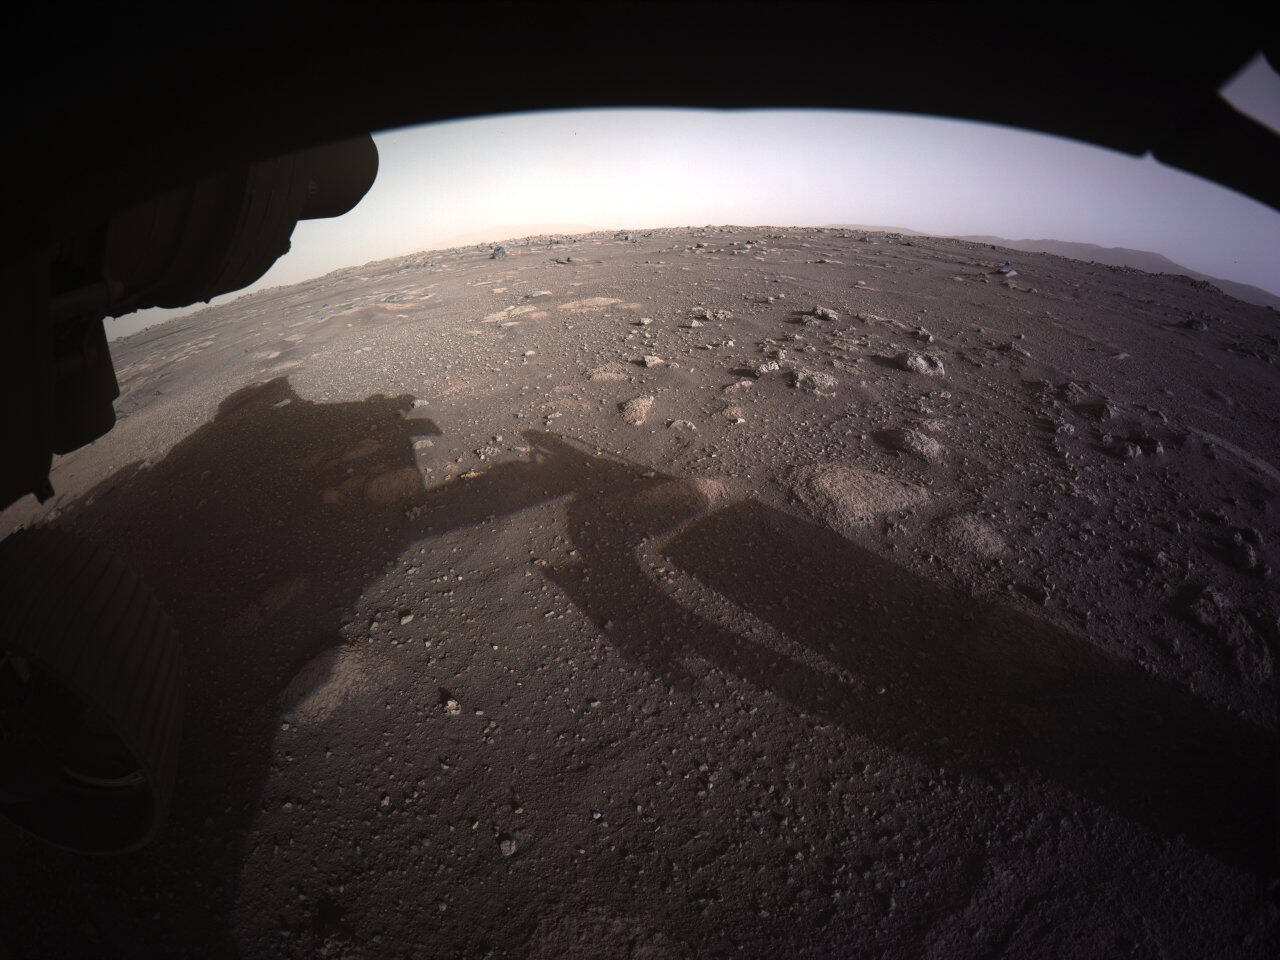 2021-02-20 space mars nasa perseverance rover first images